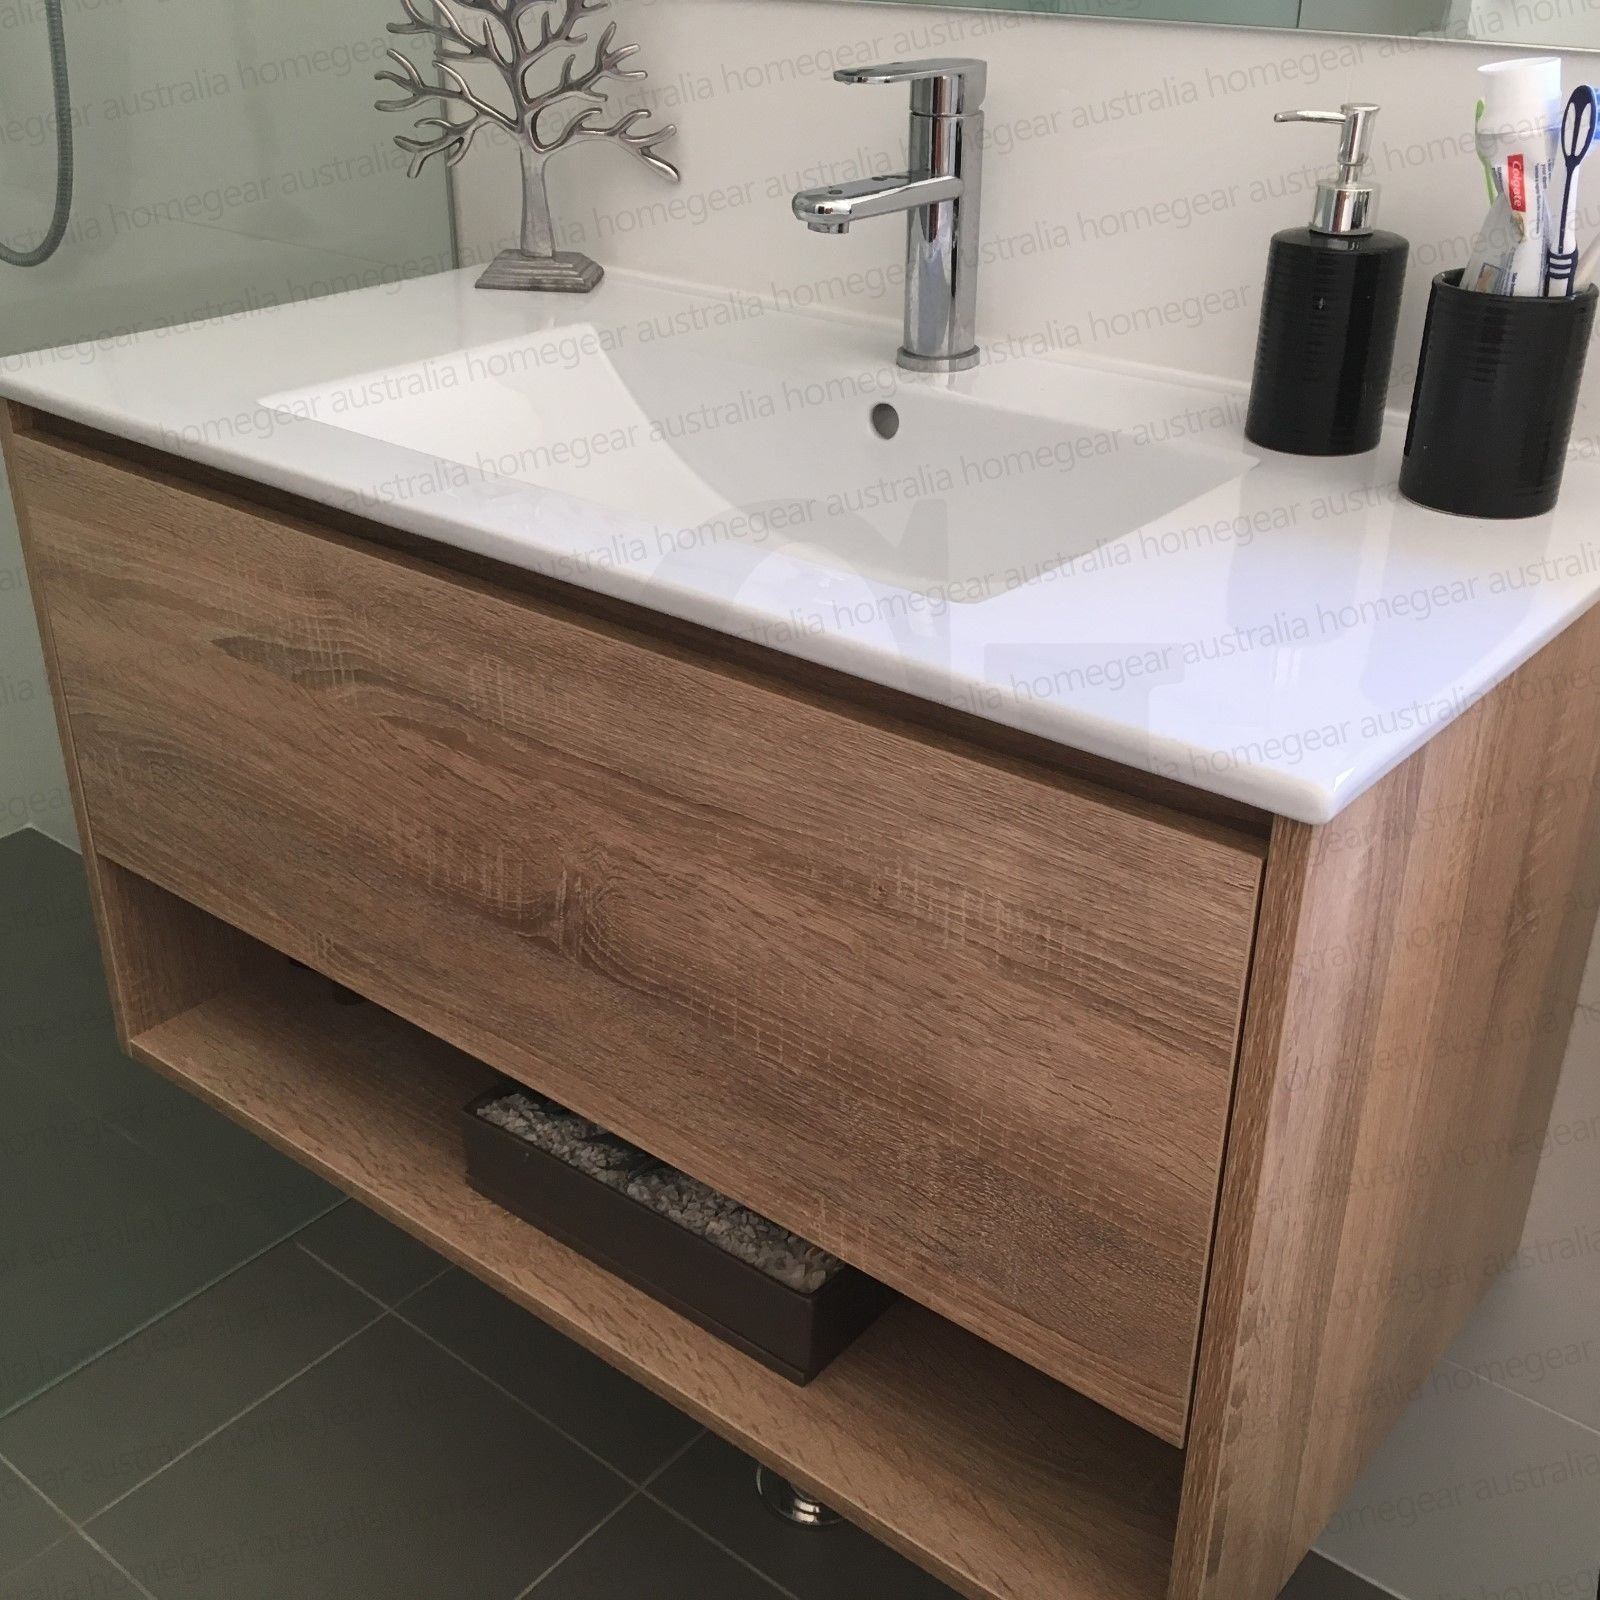 EDEN | 750mm White Oak Textured Timber Wood Grain Bathroom Vanity ...